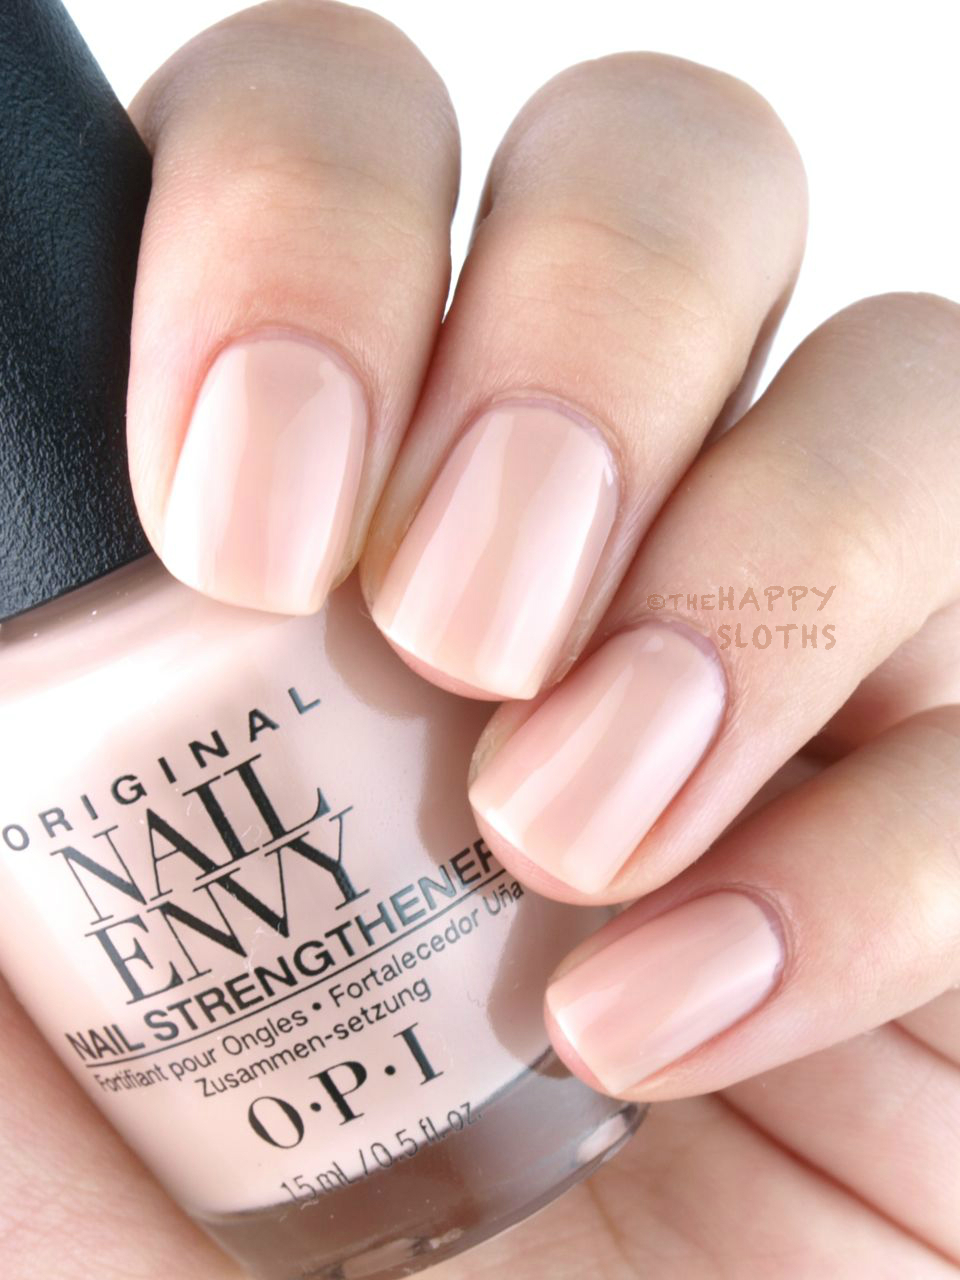 New OPI Nail Envy Nail Strengthener Strength + Color: Review and ...